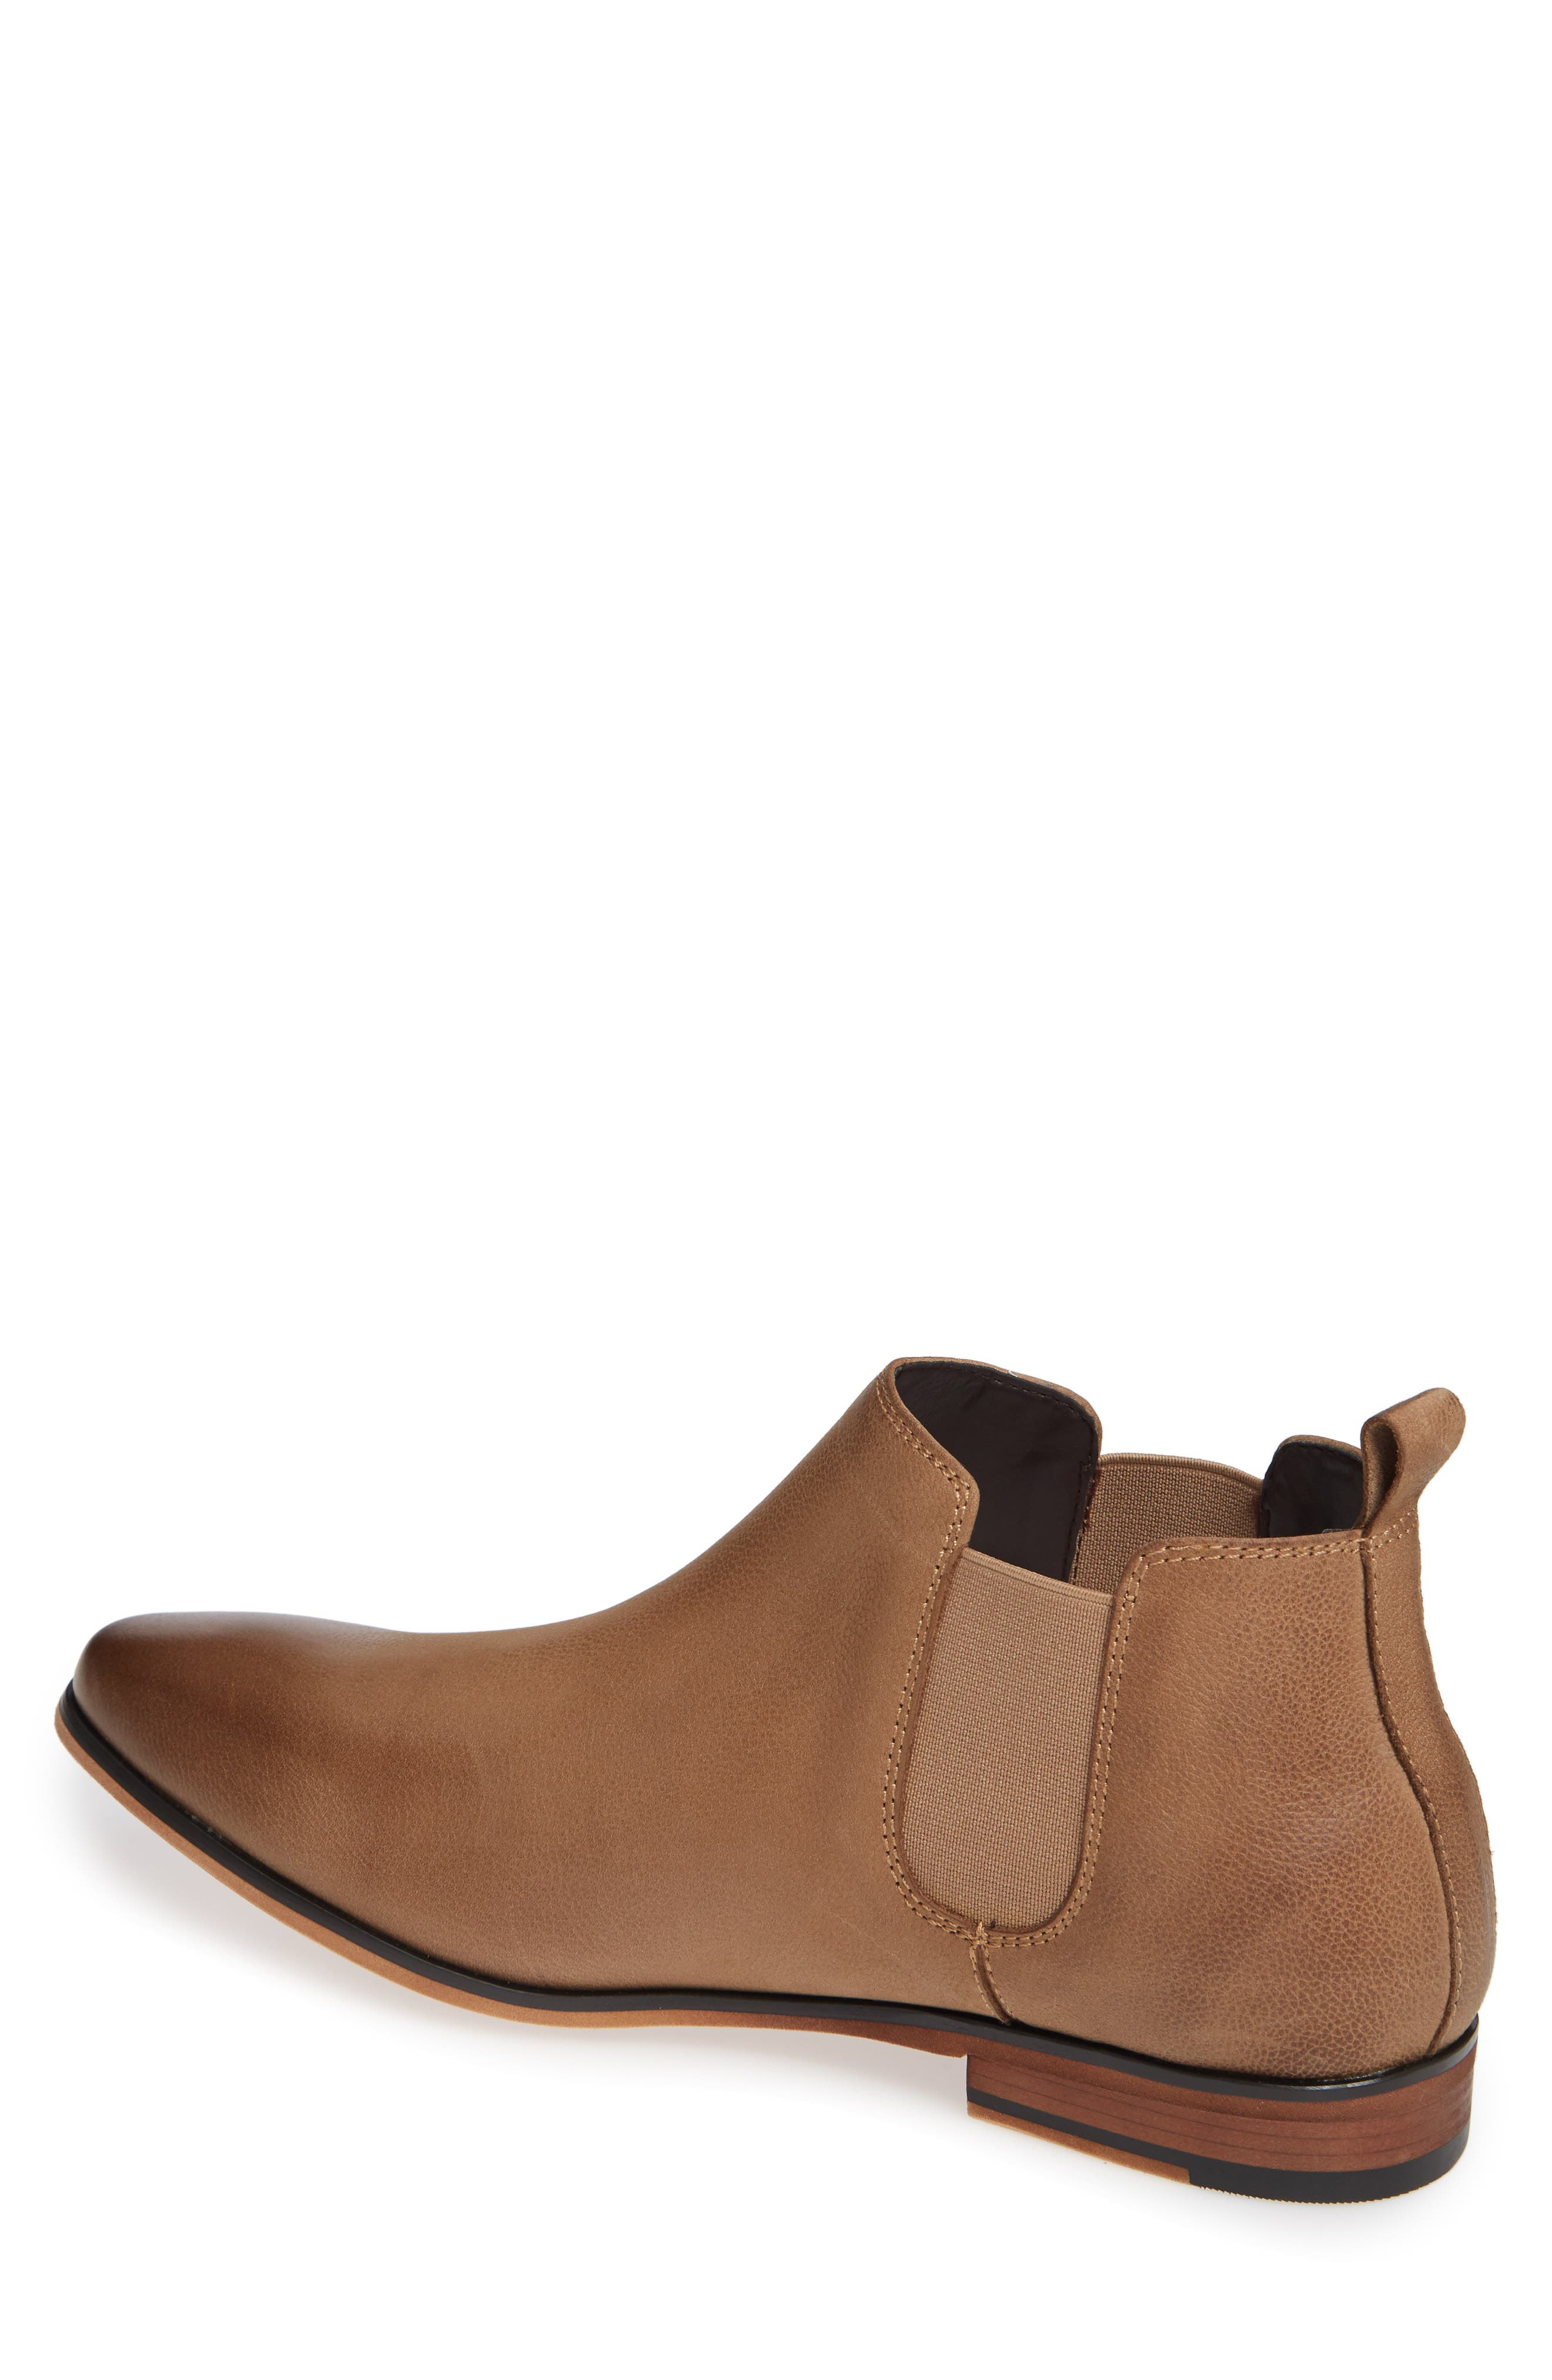 Guy Chelsea Boot,                             Alternate thumbnail 2, color,                             234